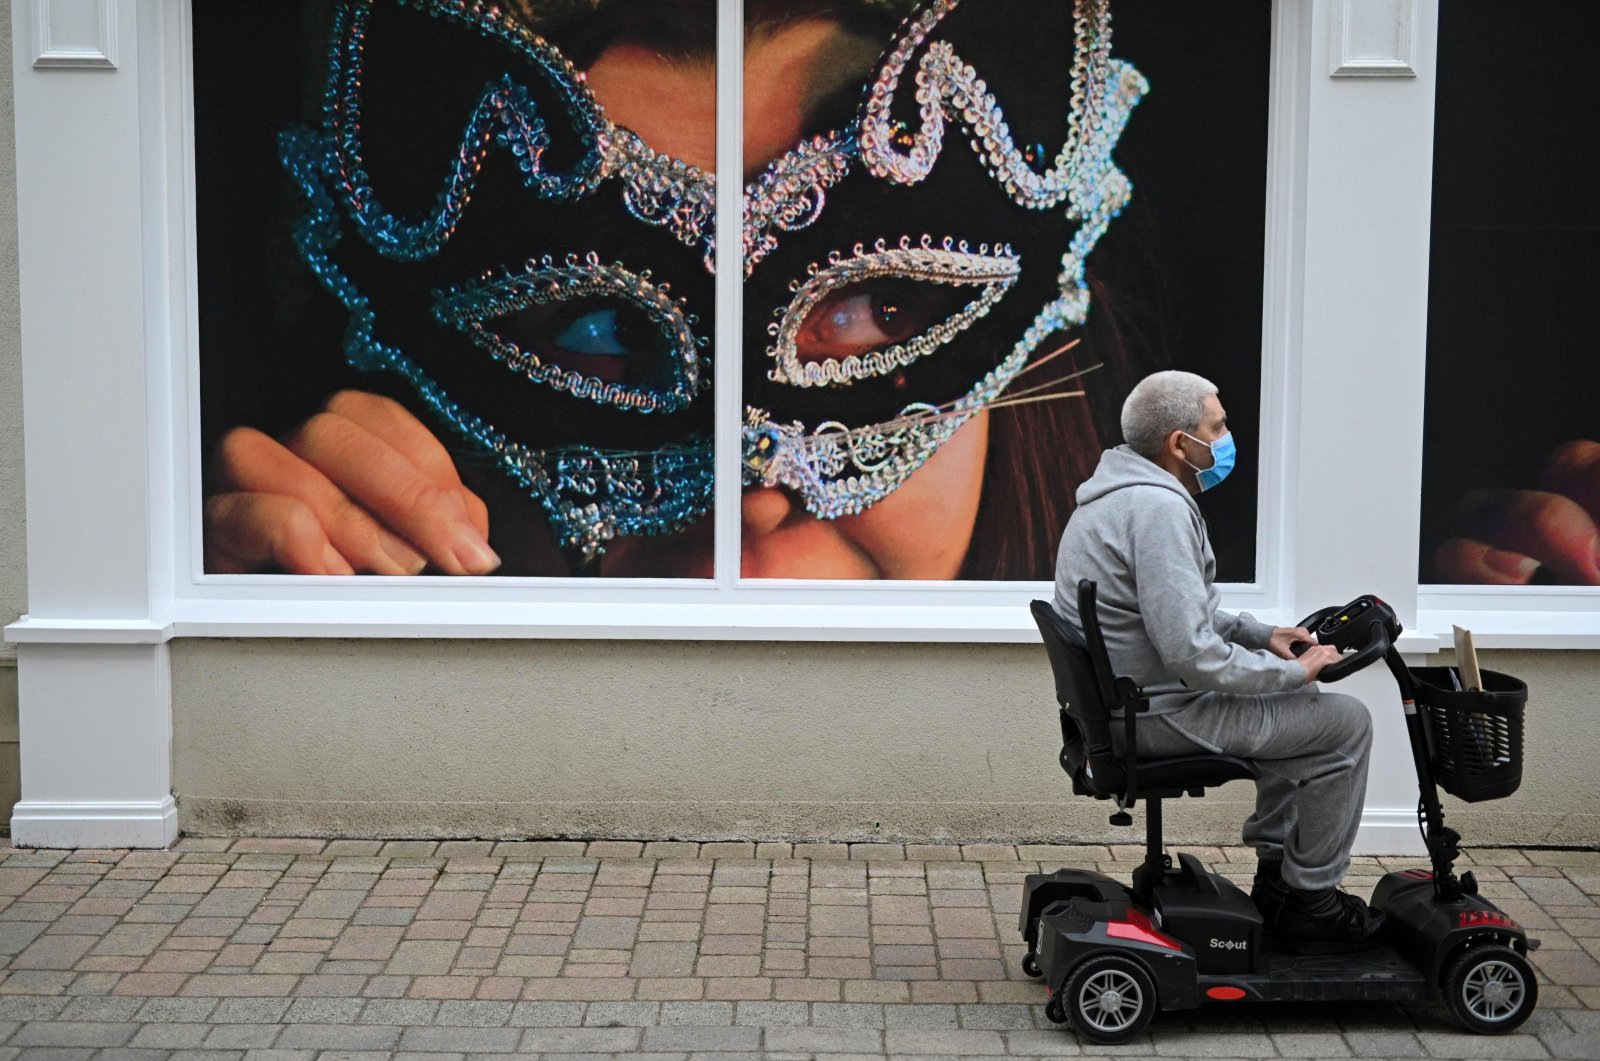 A man wearing a mask due to COVID-19 rides a mobility scooter past posters advertising the town's Winter Droving festival in Penrith, Cumbria, northwest England, on June 21, 2021. (AFP Photo)